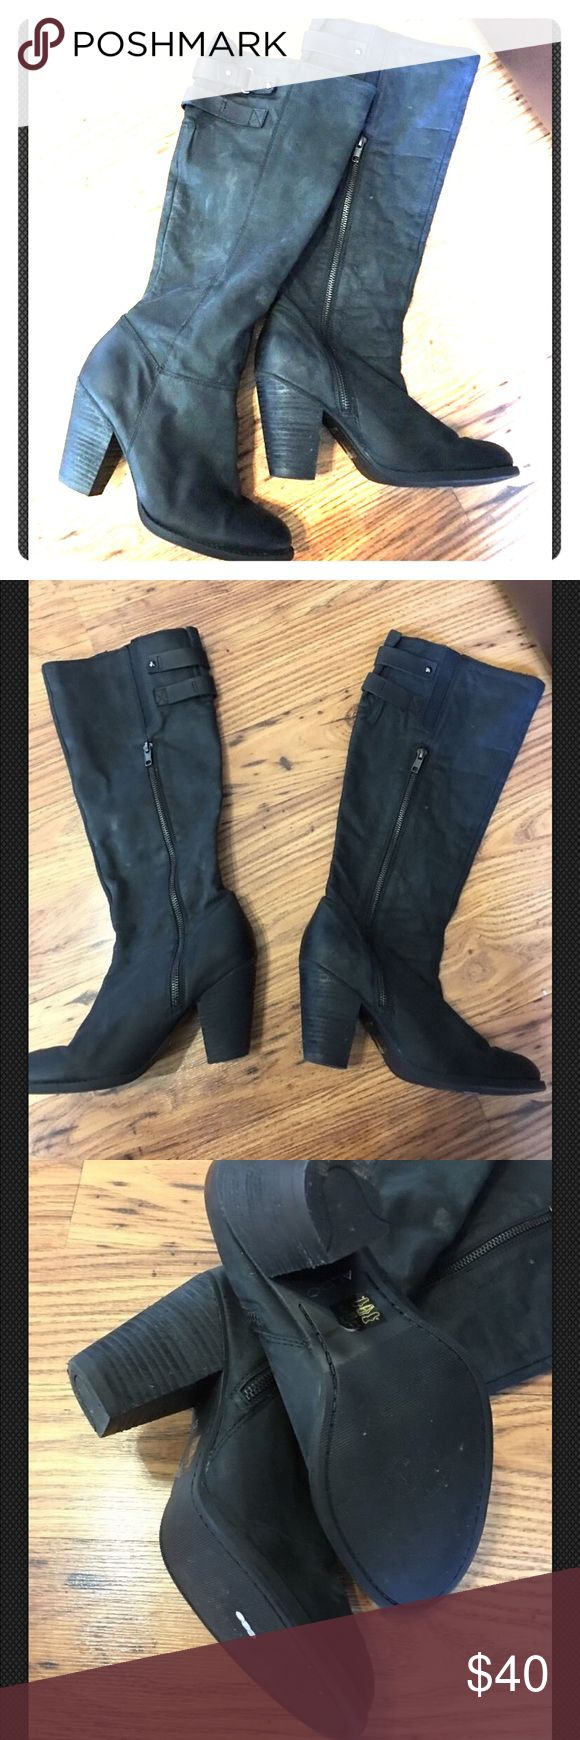 Aldo boots size 8.5 Black high heeled Aldo boots. Size 8.5. Good condition! Aldo Shoes Heeled Boots